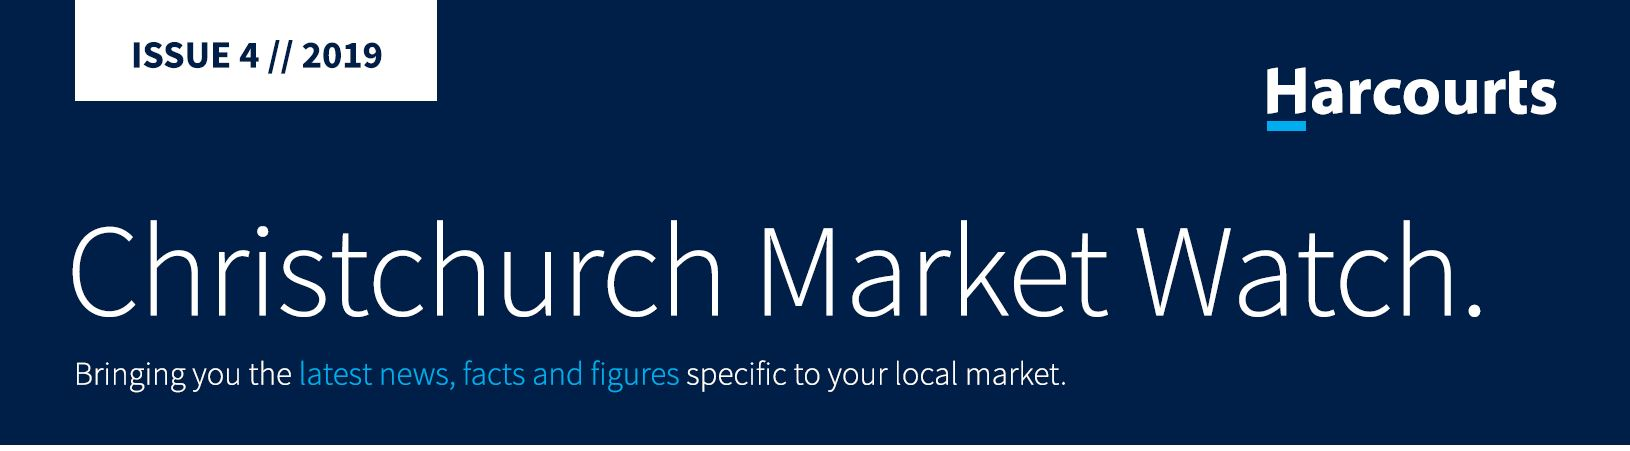 Christchurch Market Watch March 2019